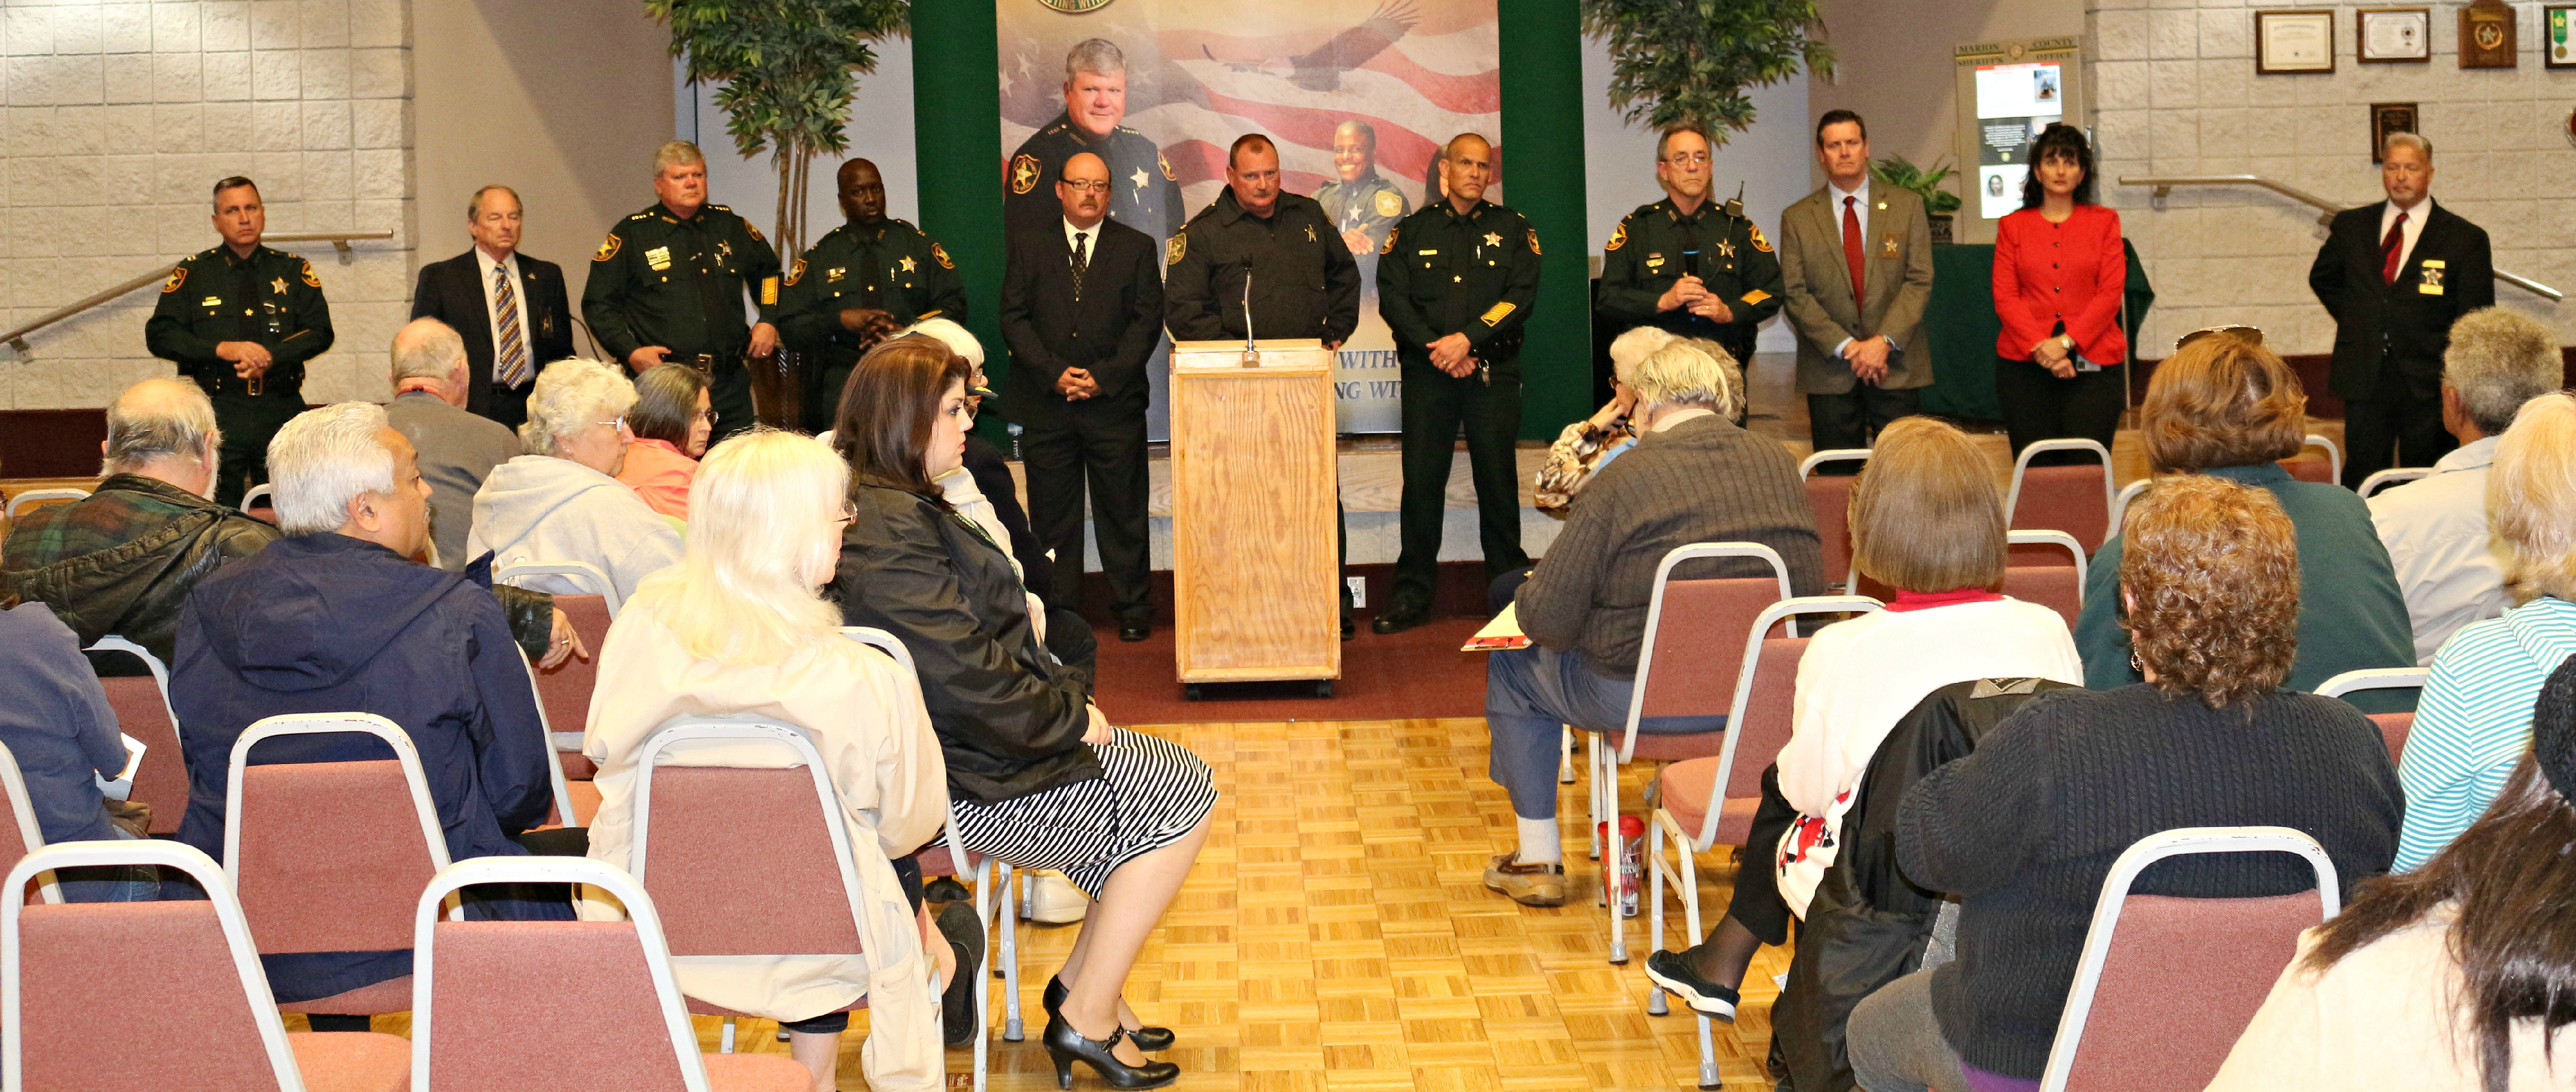 marion oaks, ocala news, town hall meeting,